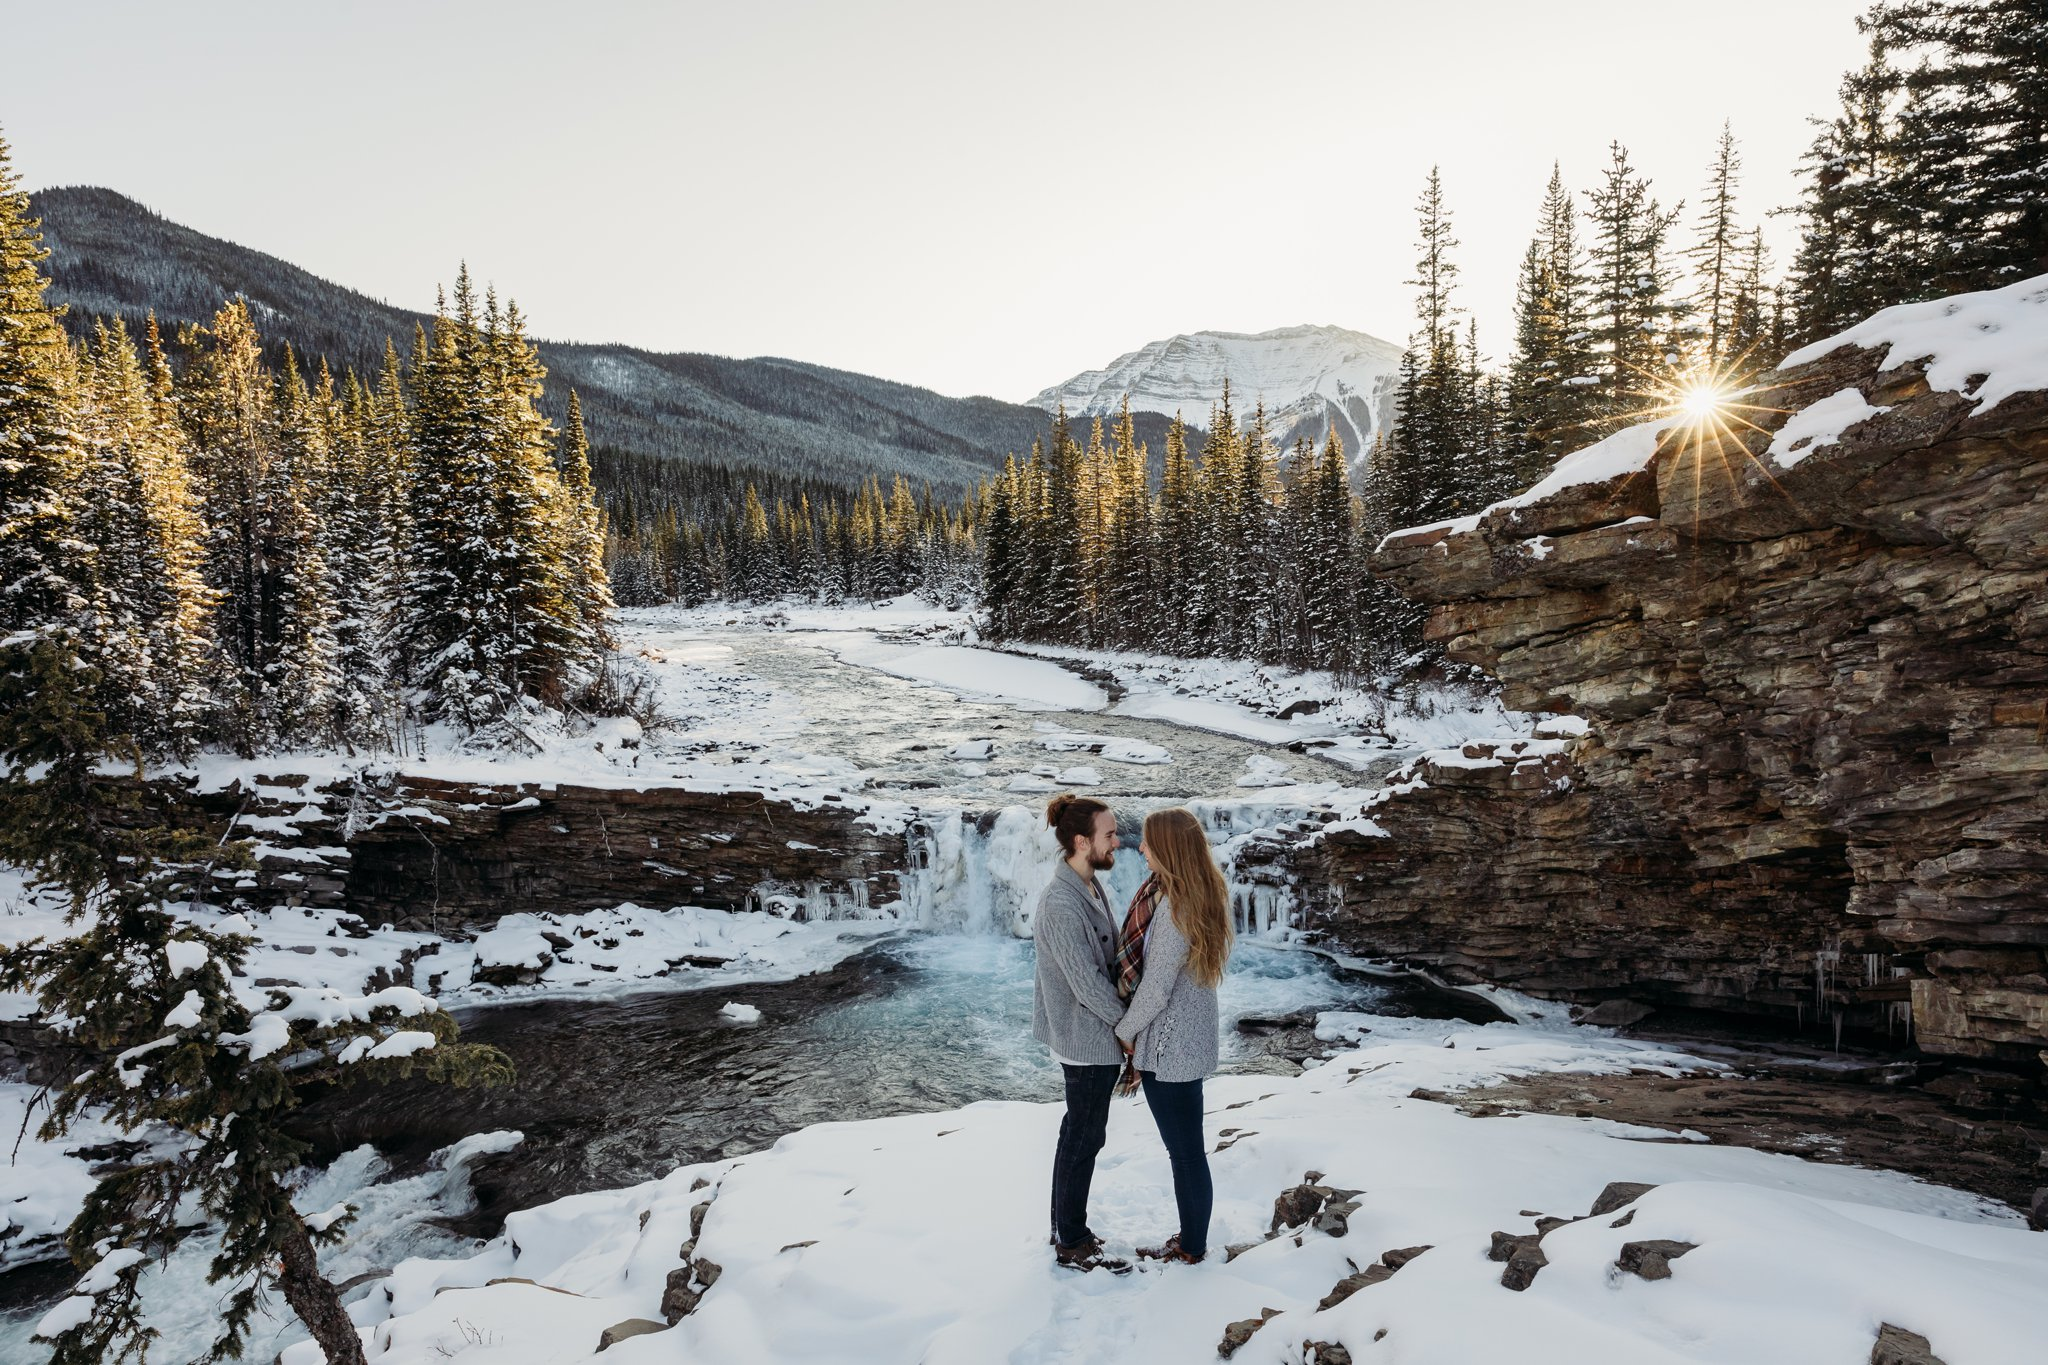 AshleyDaphnePhotography Calgary Photographer Wedding Engagement Sheep River Provincial Park Photos Kananskis Rocky Mountain Canmore Photographer_0050.jpg